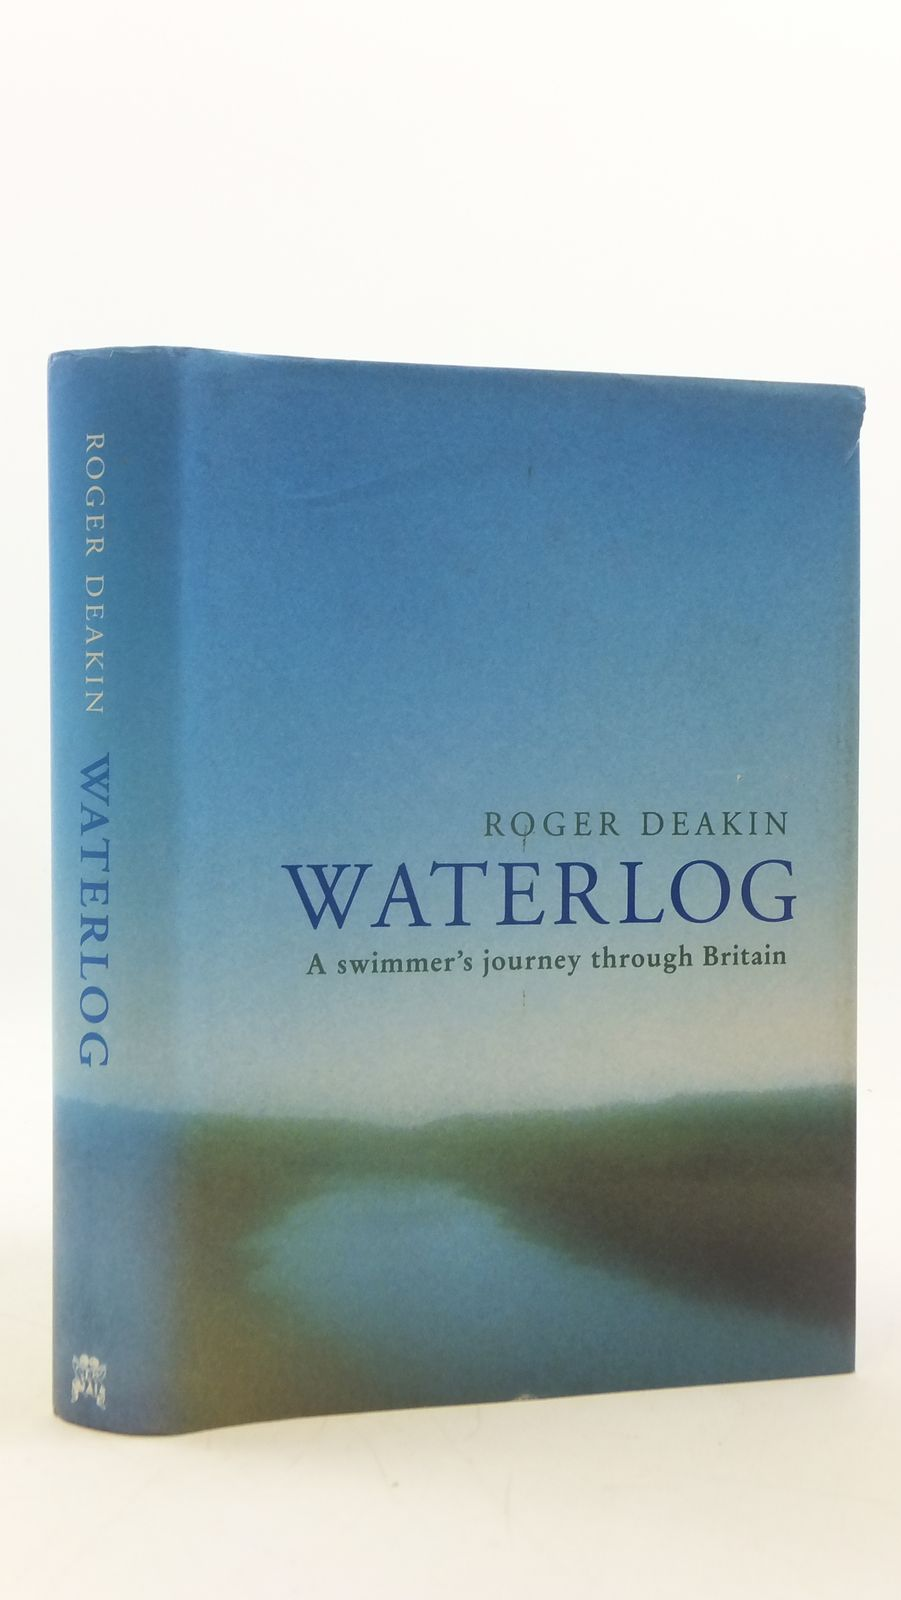 Photo of WATERLOG A SWIMMER'S JOURNEY THROUGH BRITAIN- Stock Number: 2111631